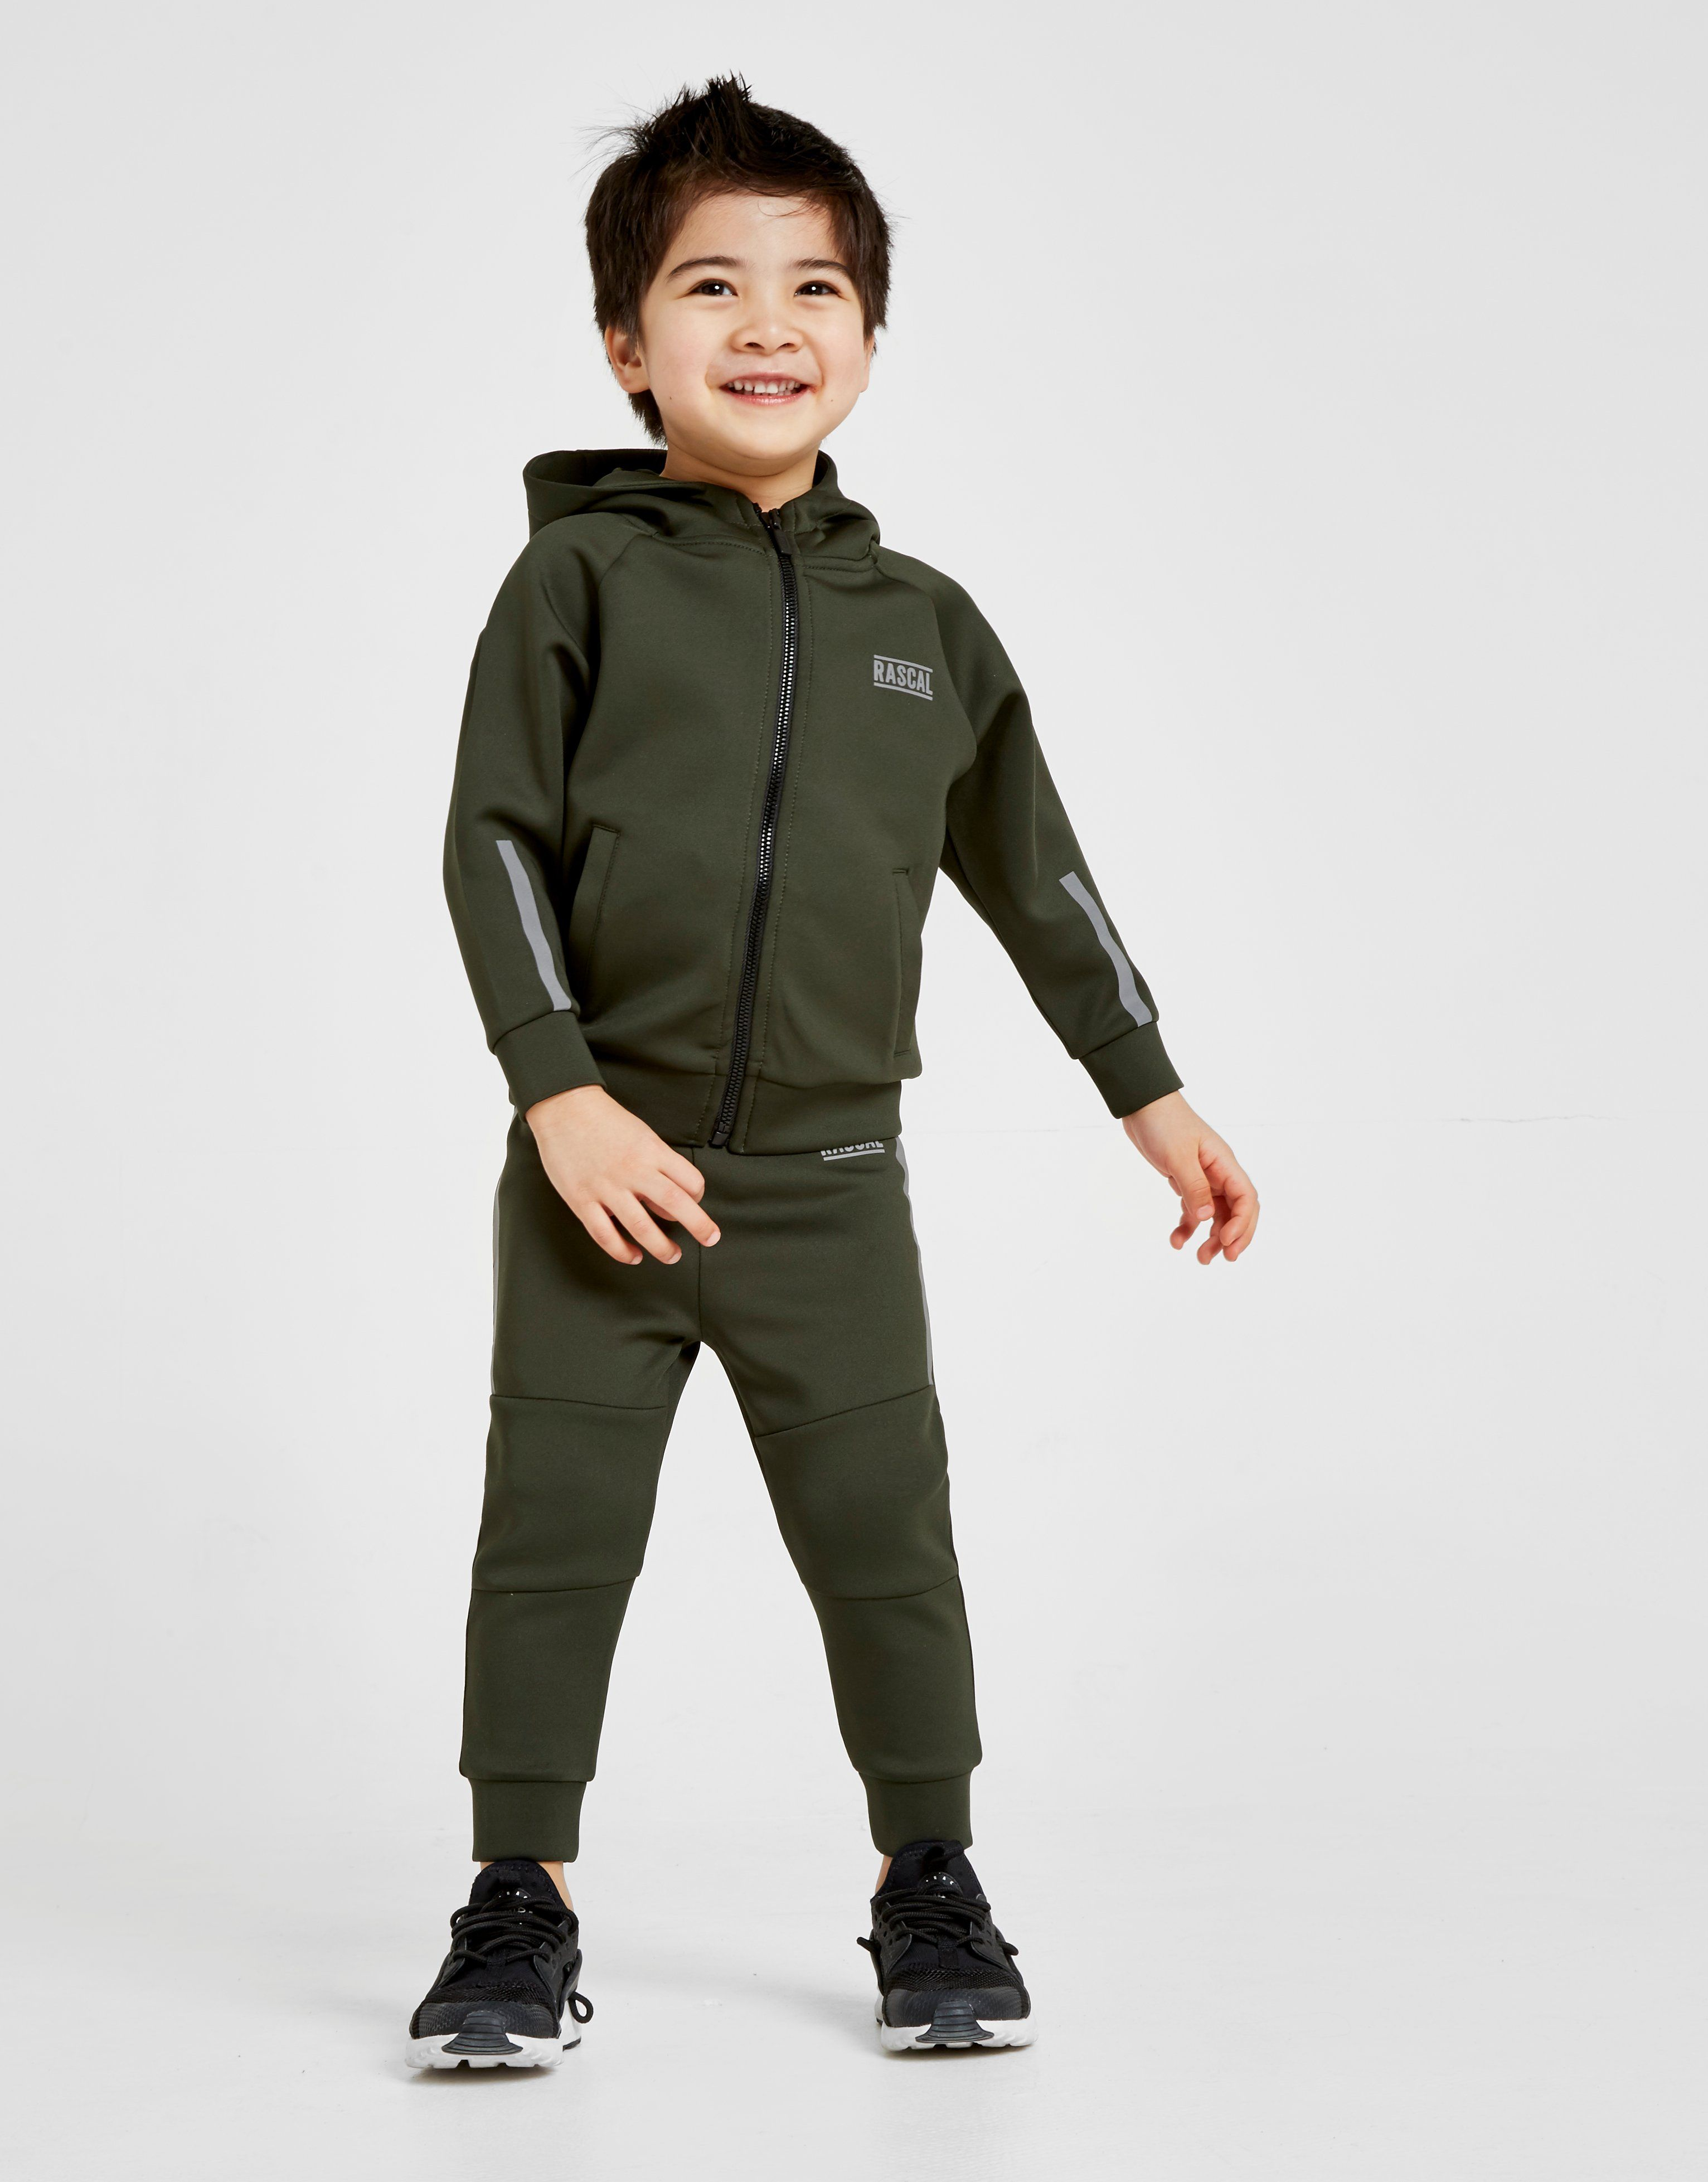 Rascal Mission Poly Tracksuit Baby's